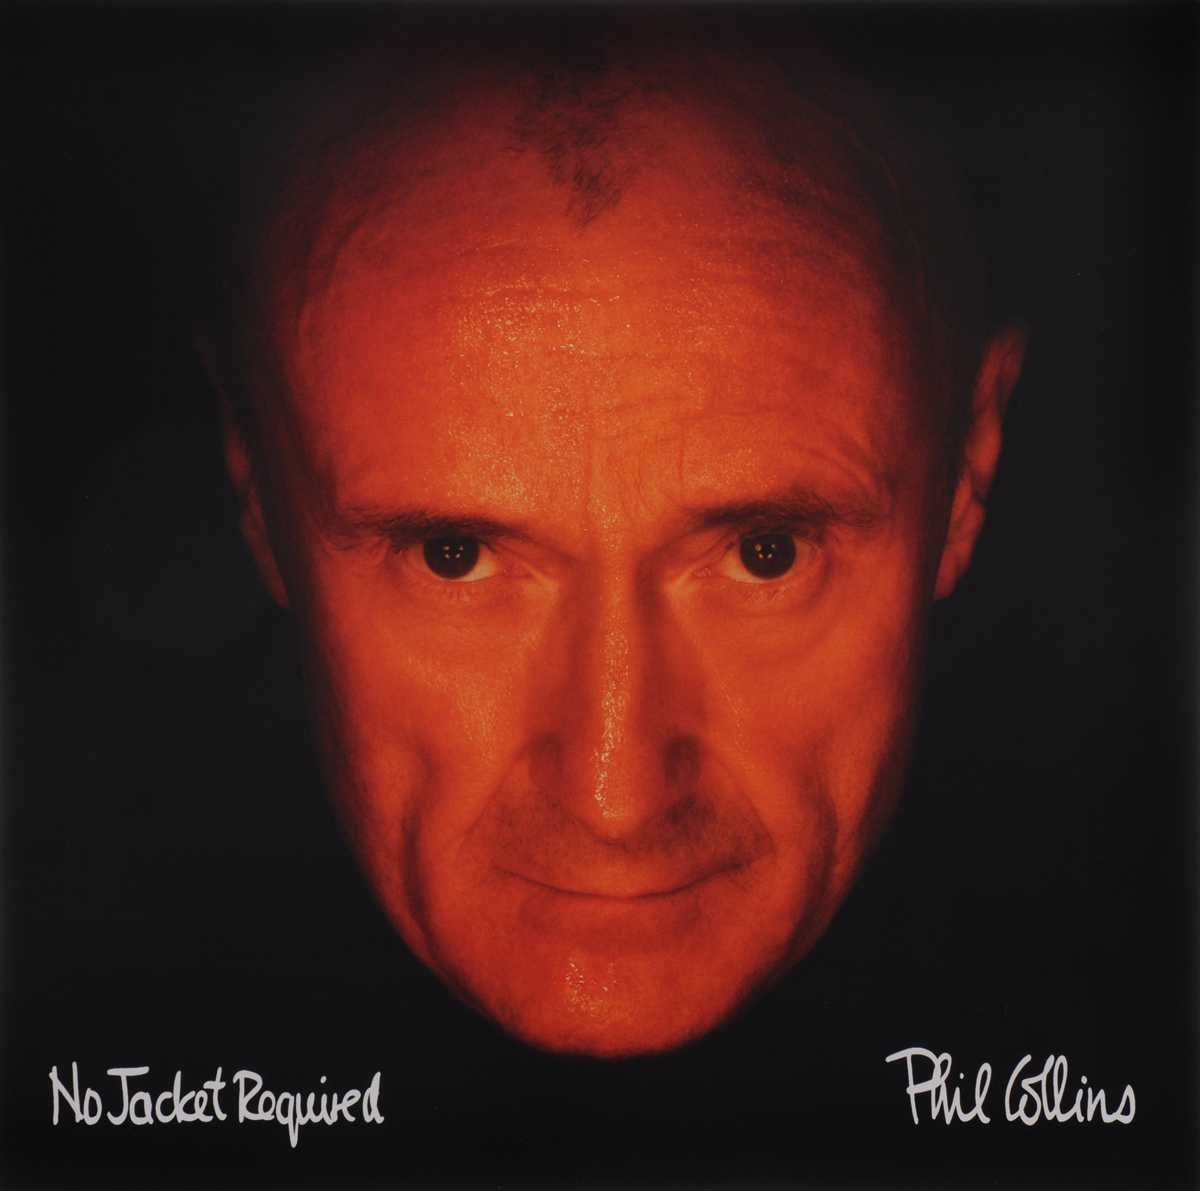 лучшая цена Фил Коллинз Phil Collins. No Jacket Required (LP)